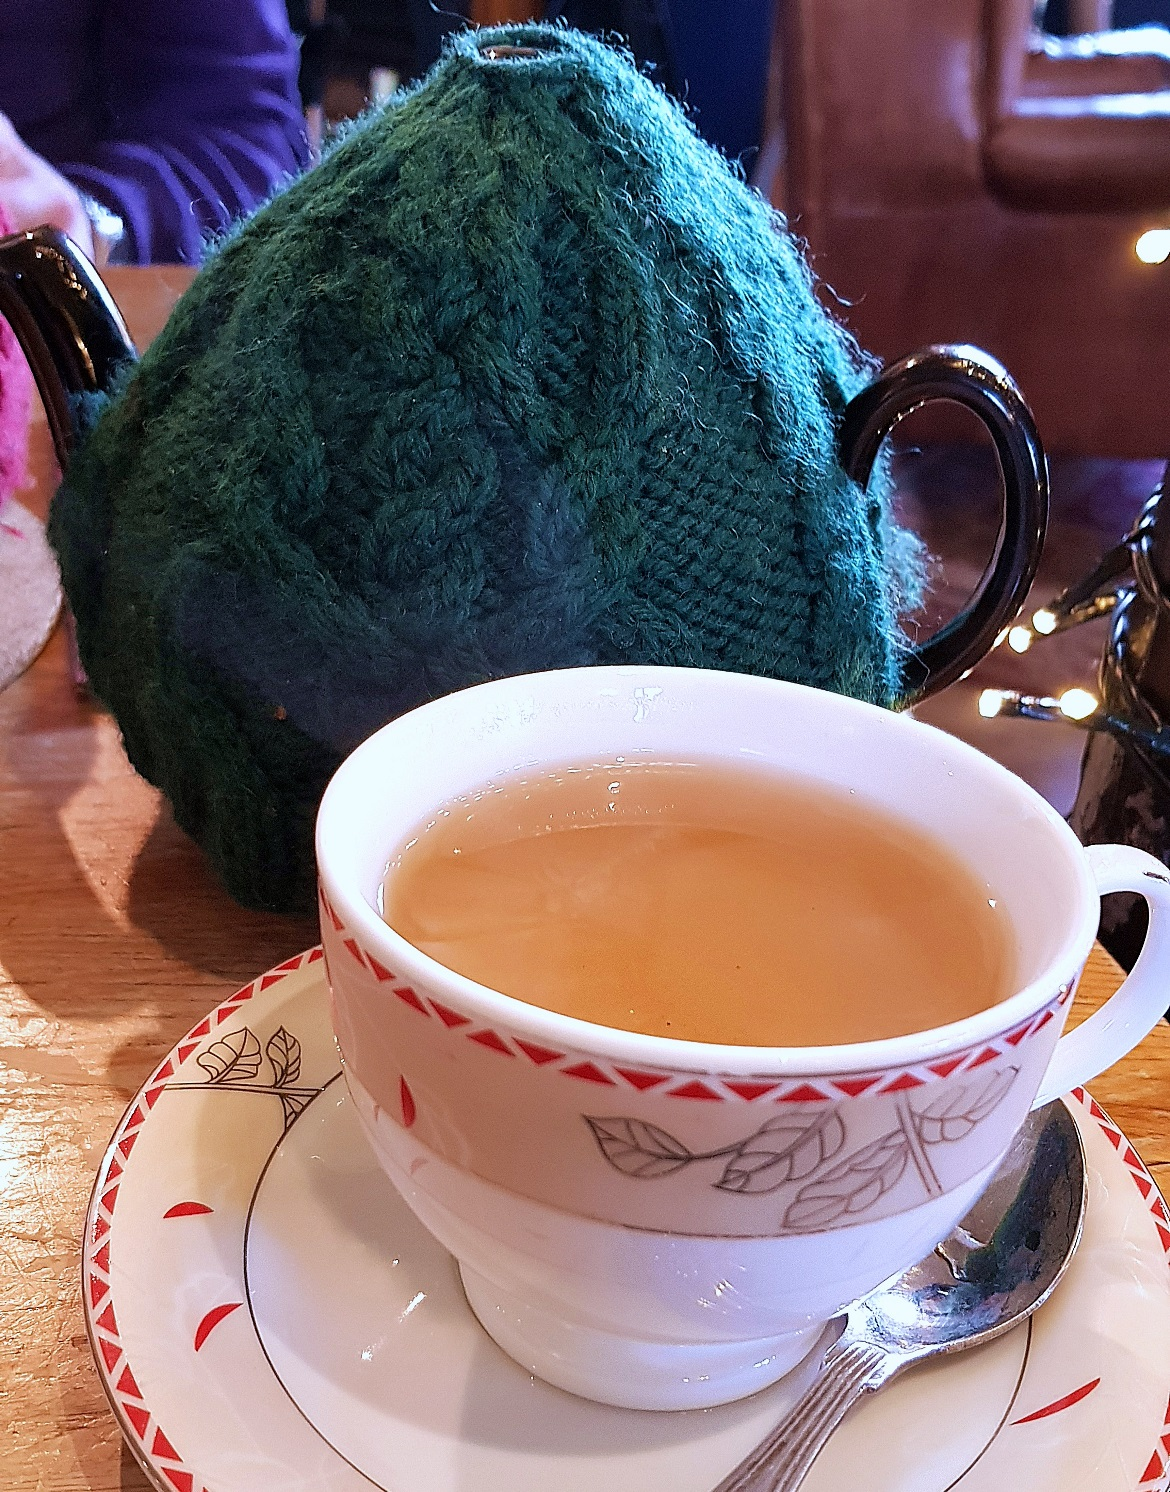 Jasmine tea at Teahouse Theatre in Vauxhall - November Monthly Recap by BeckyBecky Blogs